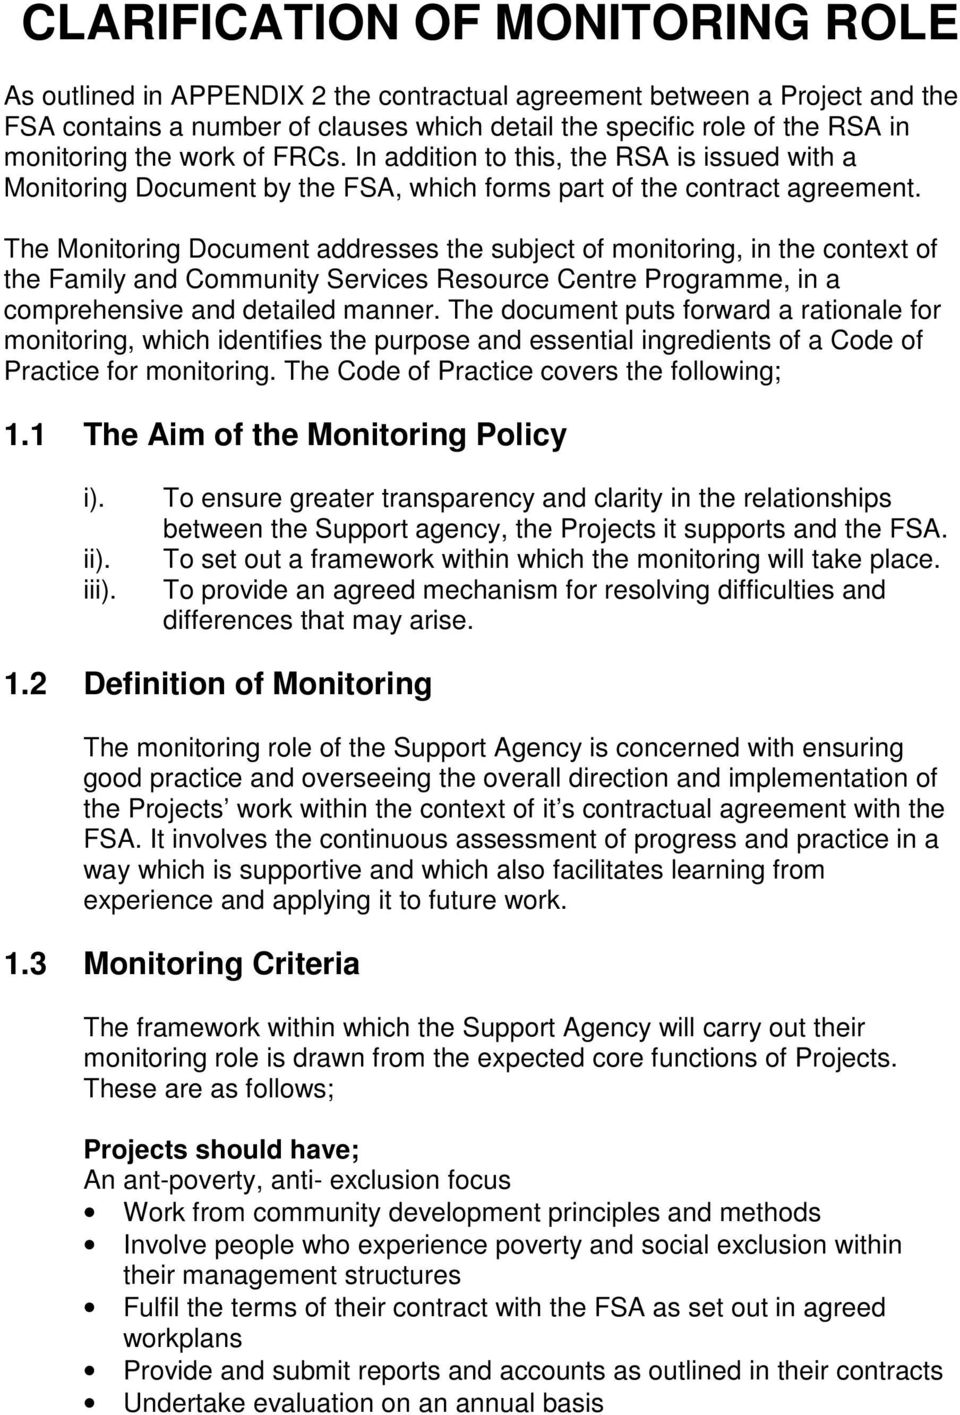 The Monitoring Document addresses the subject of monitoring, in the context of the Family and Community Services Resource Centre Programme, in a comprehensive and detailed manner.